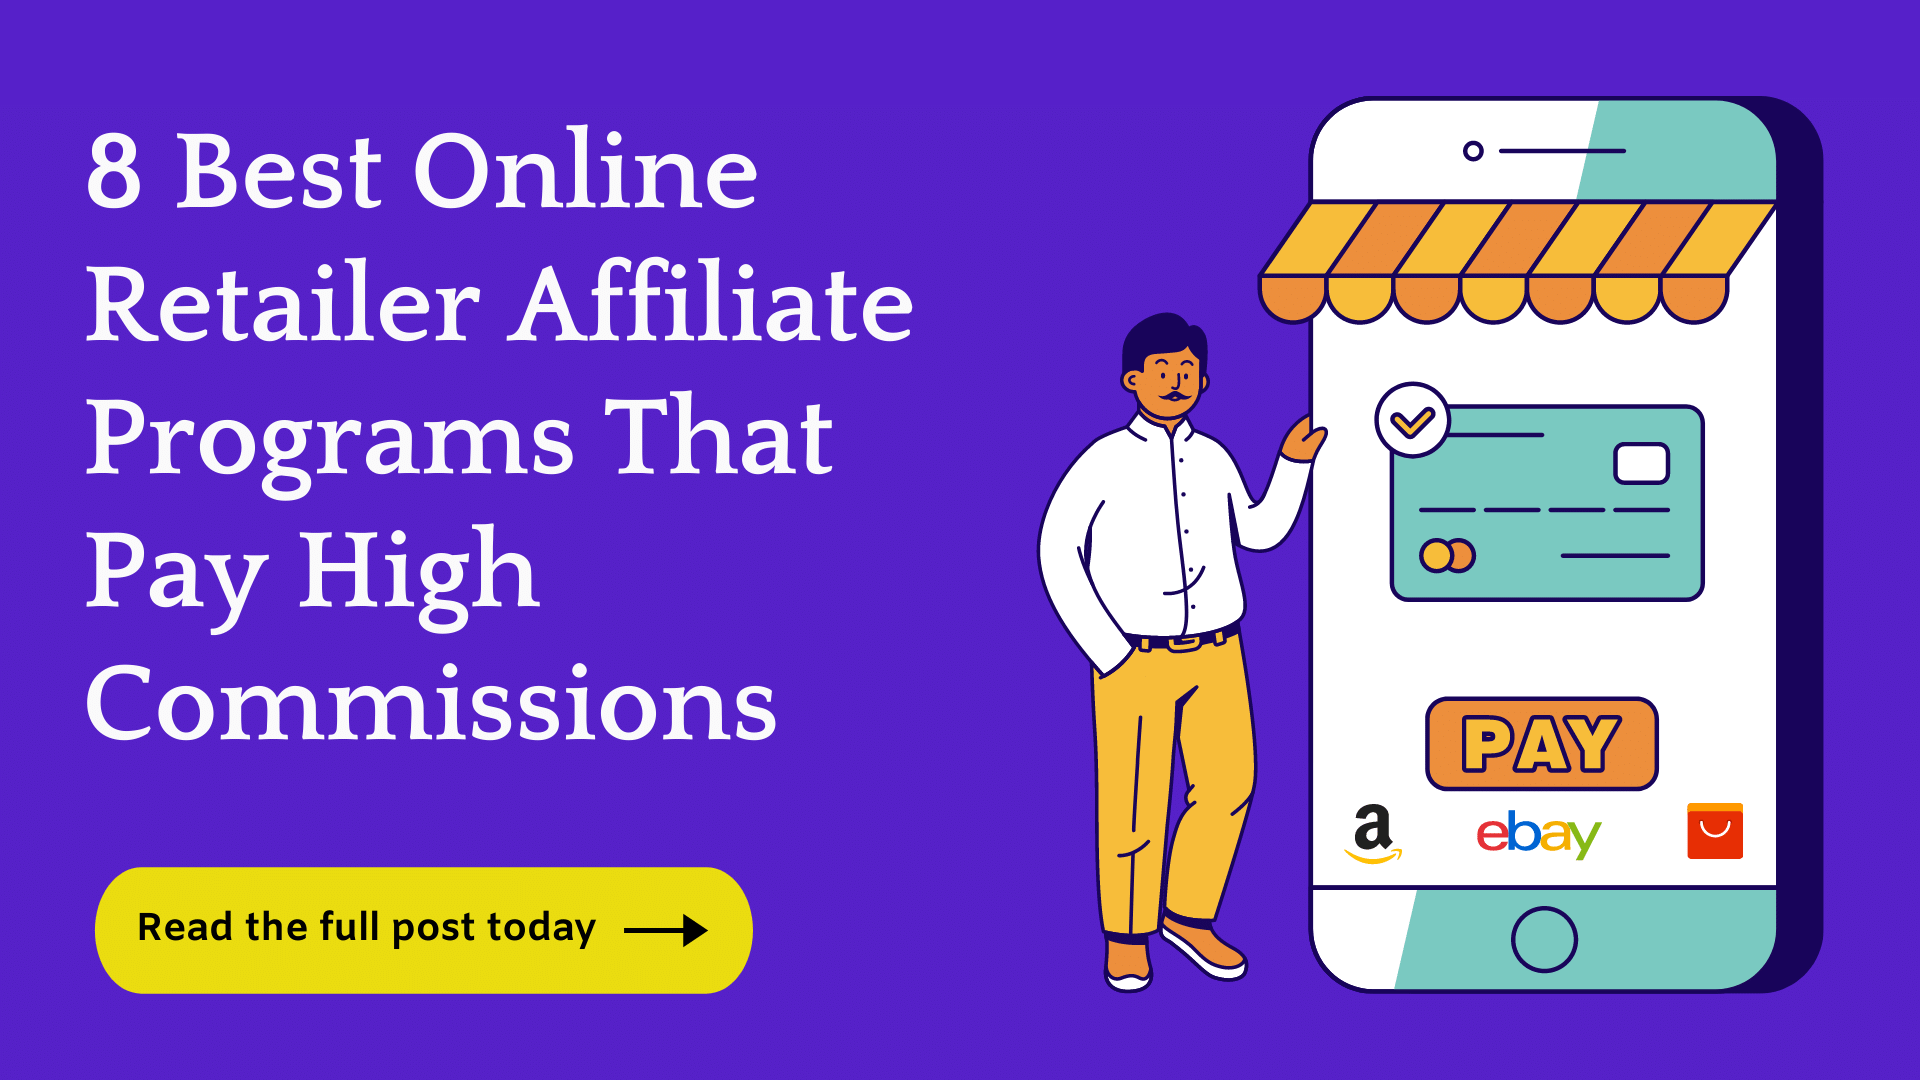 8 Best Online Retailer Affiliate Programs For Affiliates (2021)